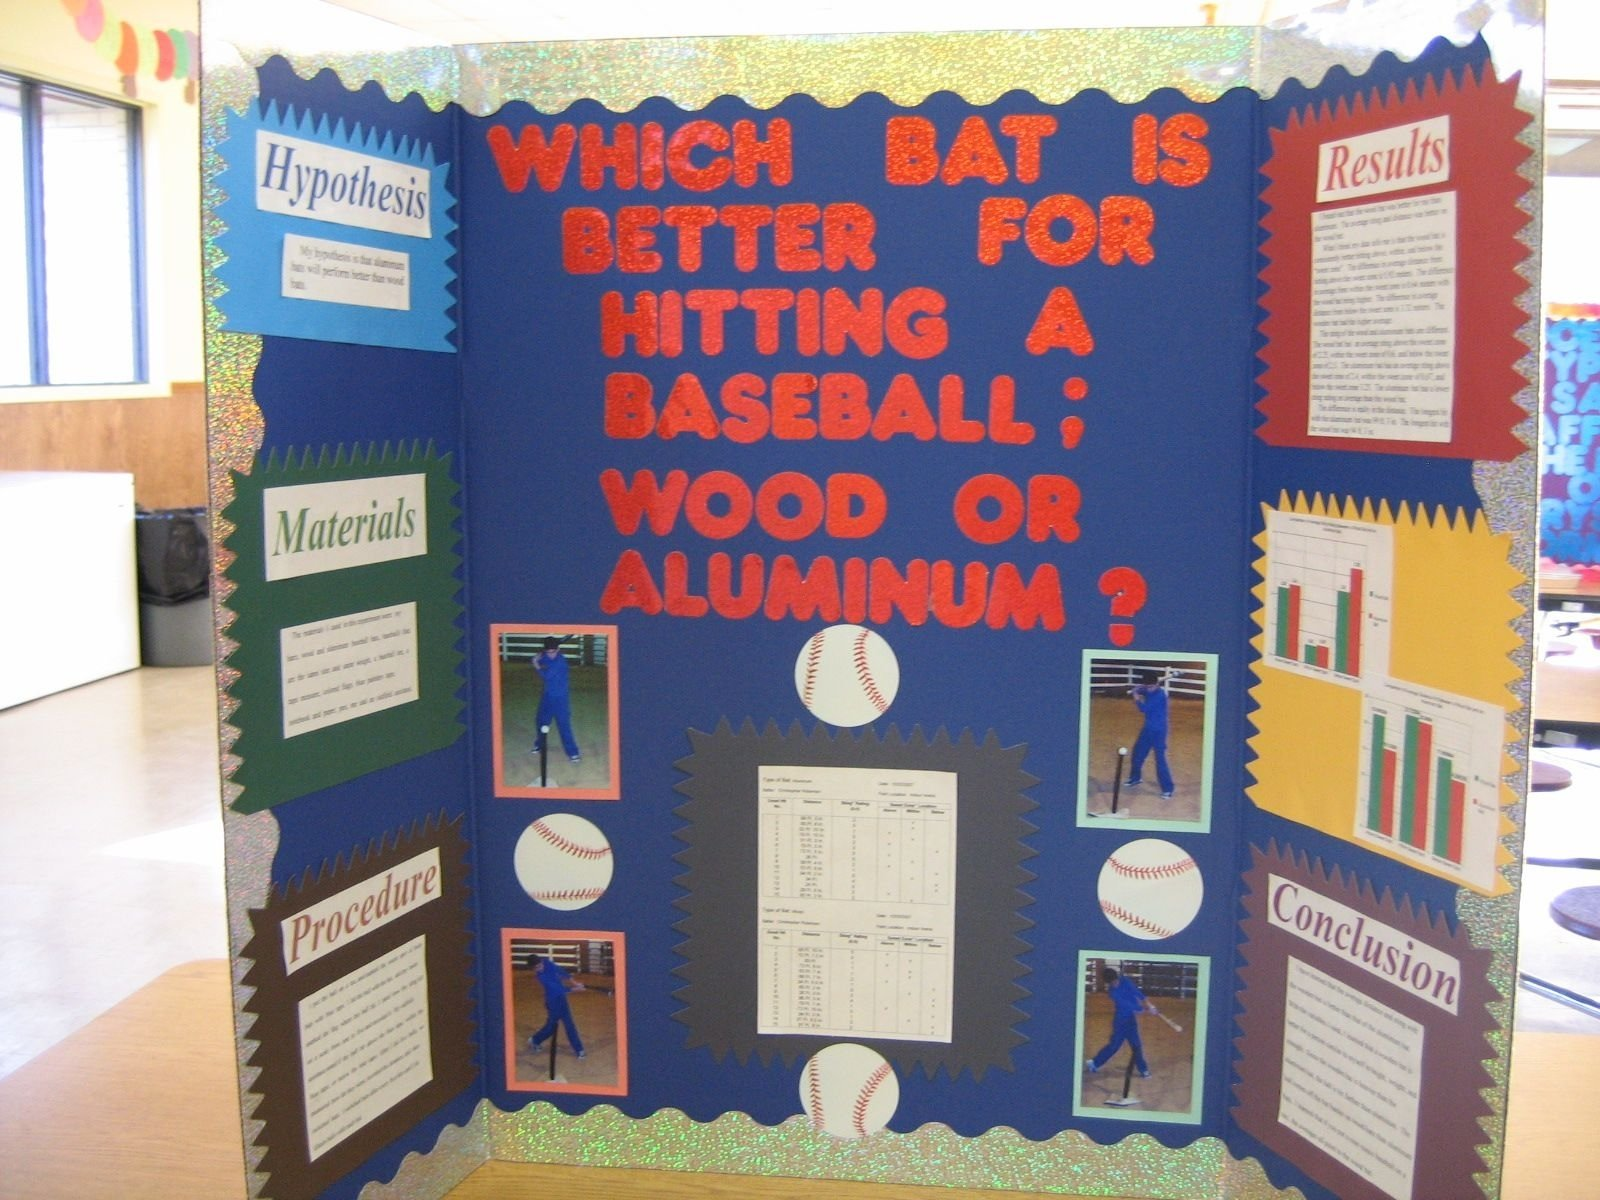 10 Awesome Sports Science Fair Project Ideas baseball bat science fair project which bat is better for hitting